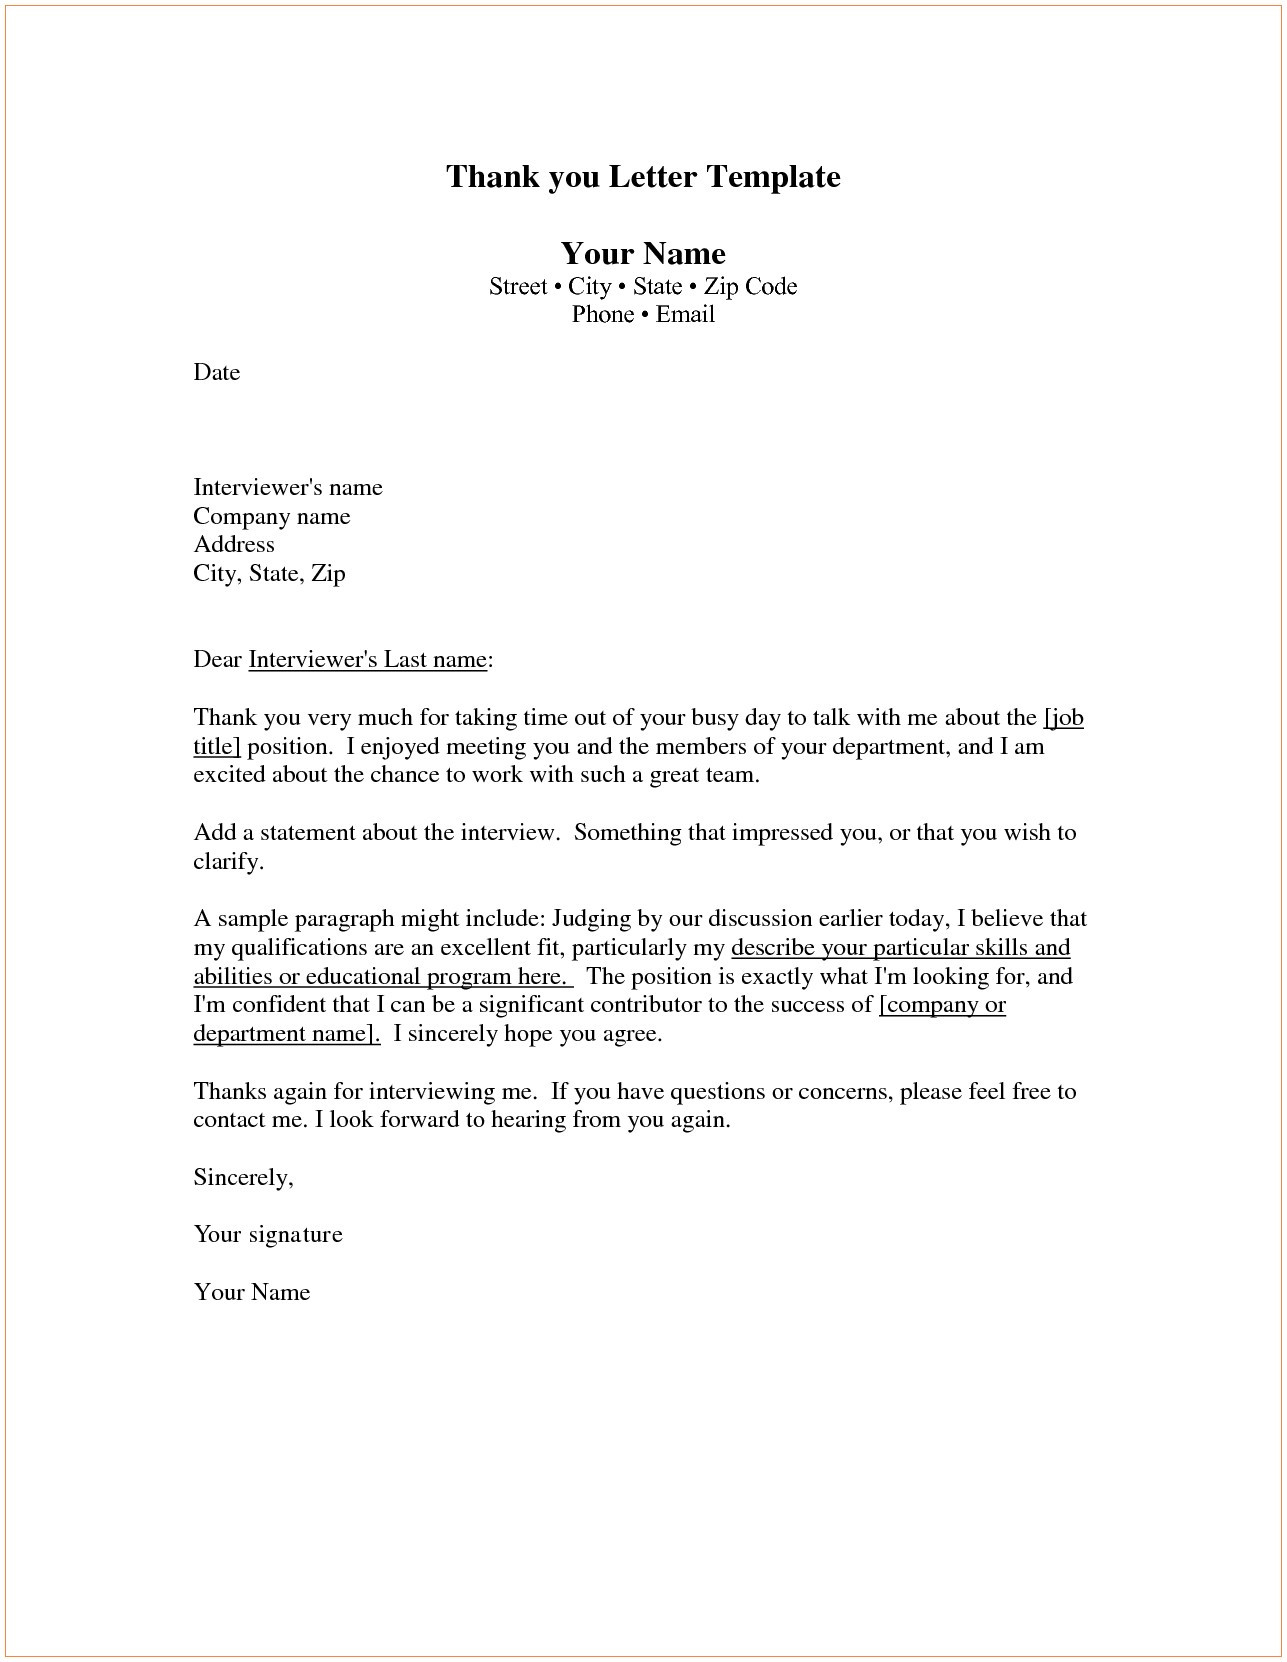 Free Demand Letter Template - Time F Request Letter Luxury Http Jobsearch About Od Sampleletters